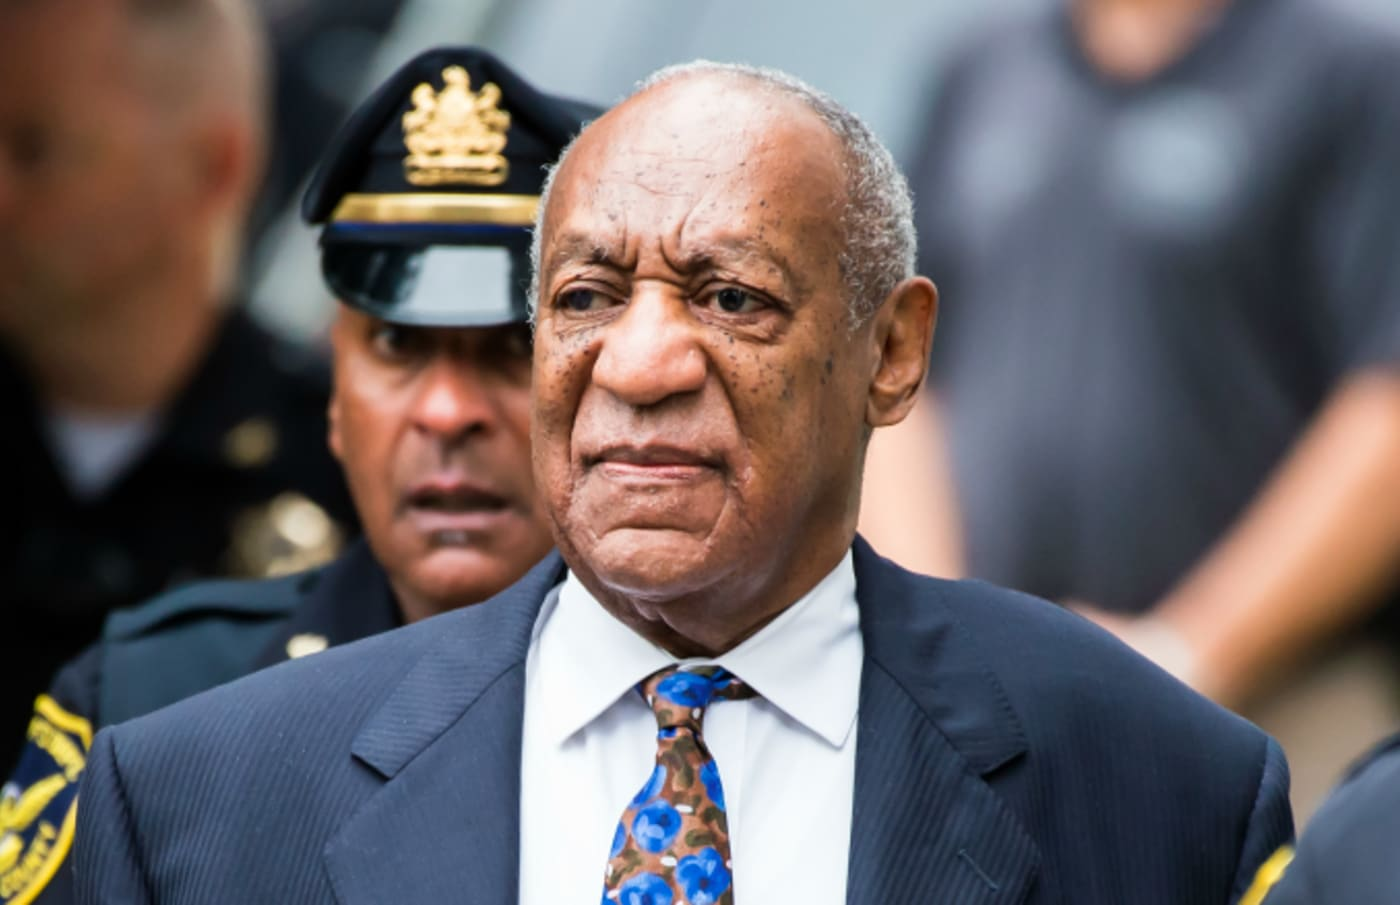 Actor/stand up comedian Bill Cosby